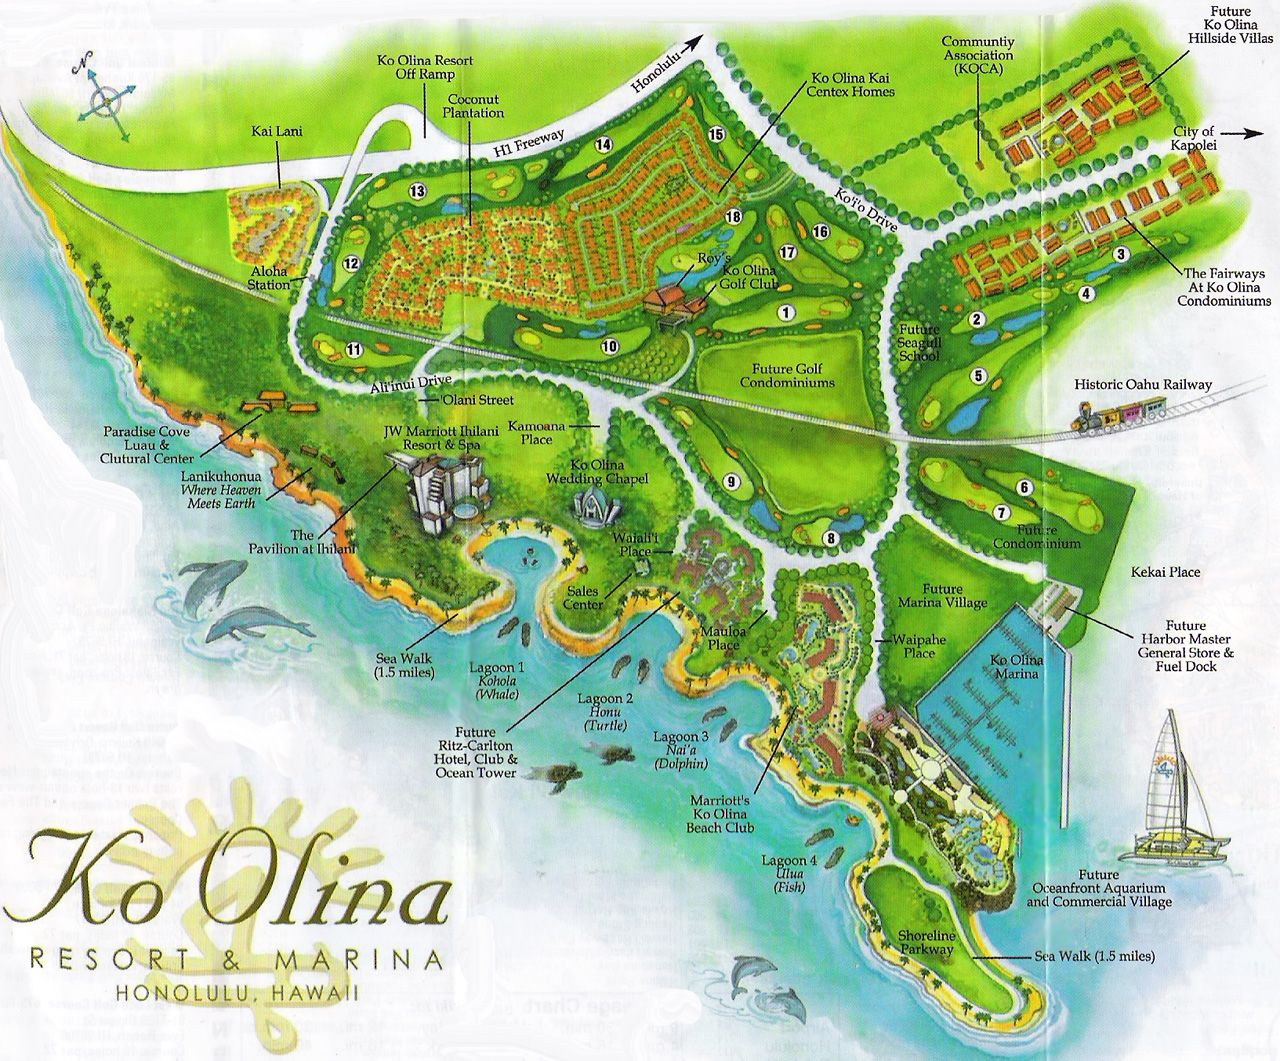 Koolina Resort Hawaii Tourist Map - Koolina Resort Hawaii